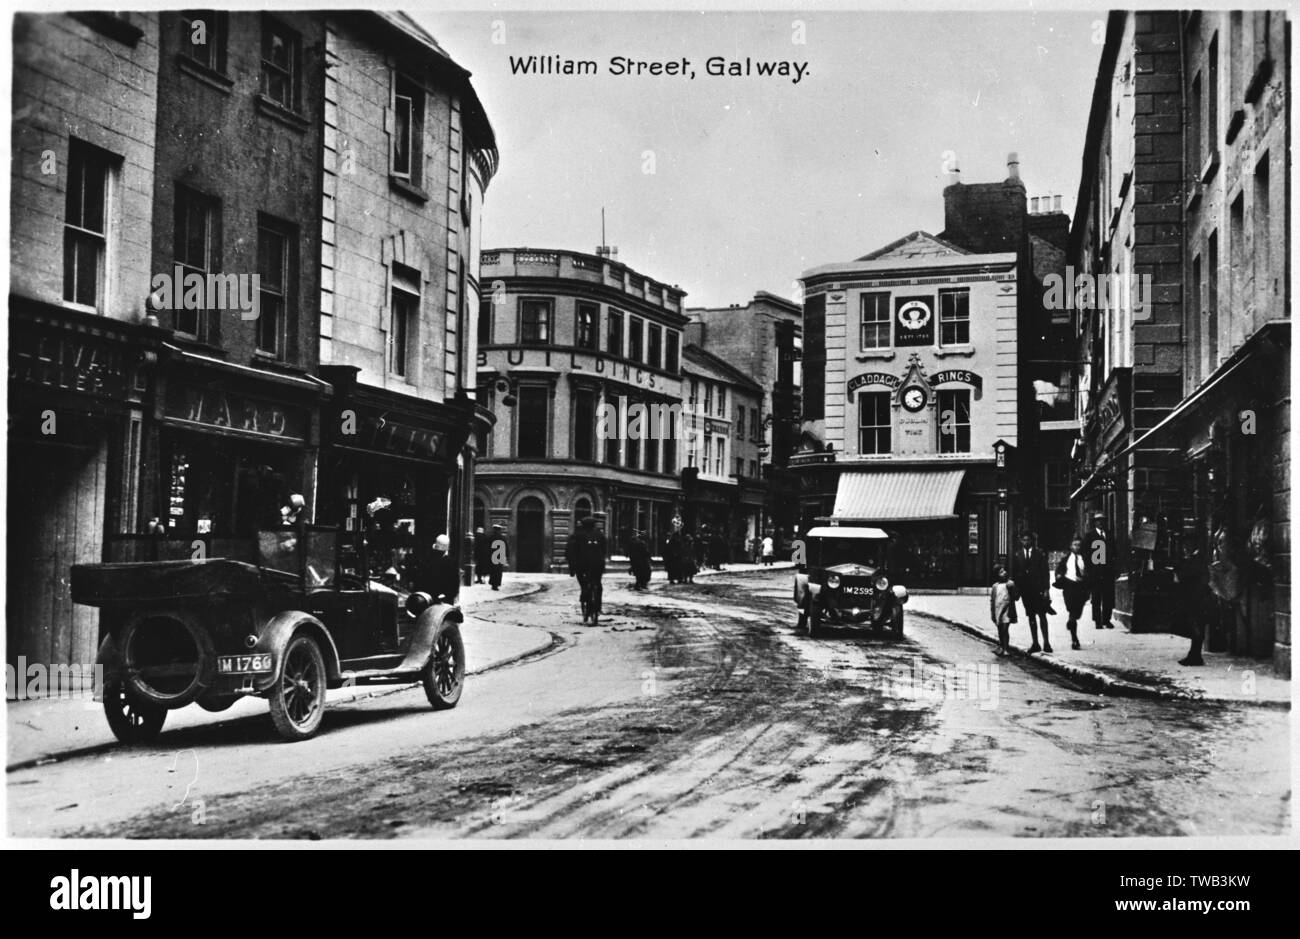 Vista di William Street, Galway, Irlanda, con neve sul terreno. Data: circa 1912 Foto Stock